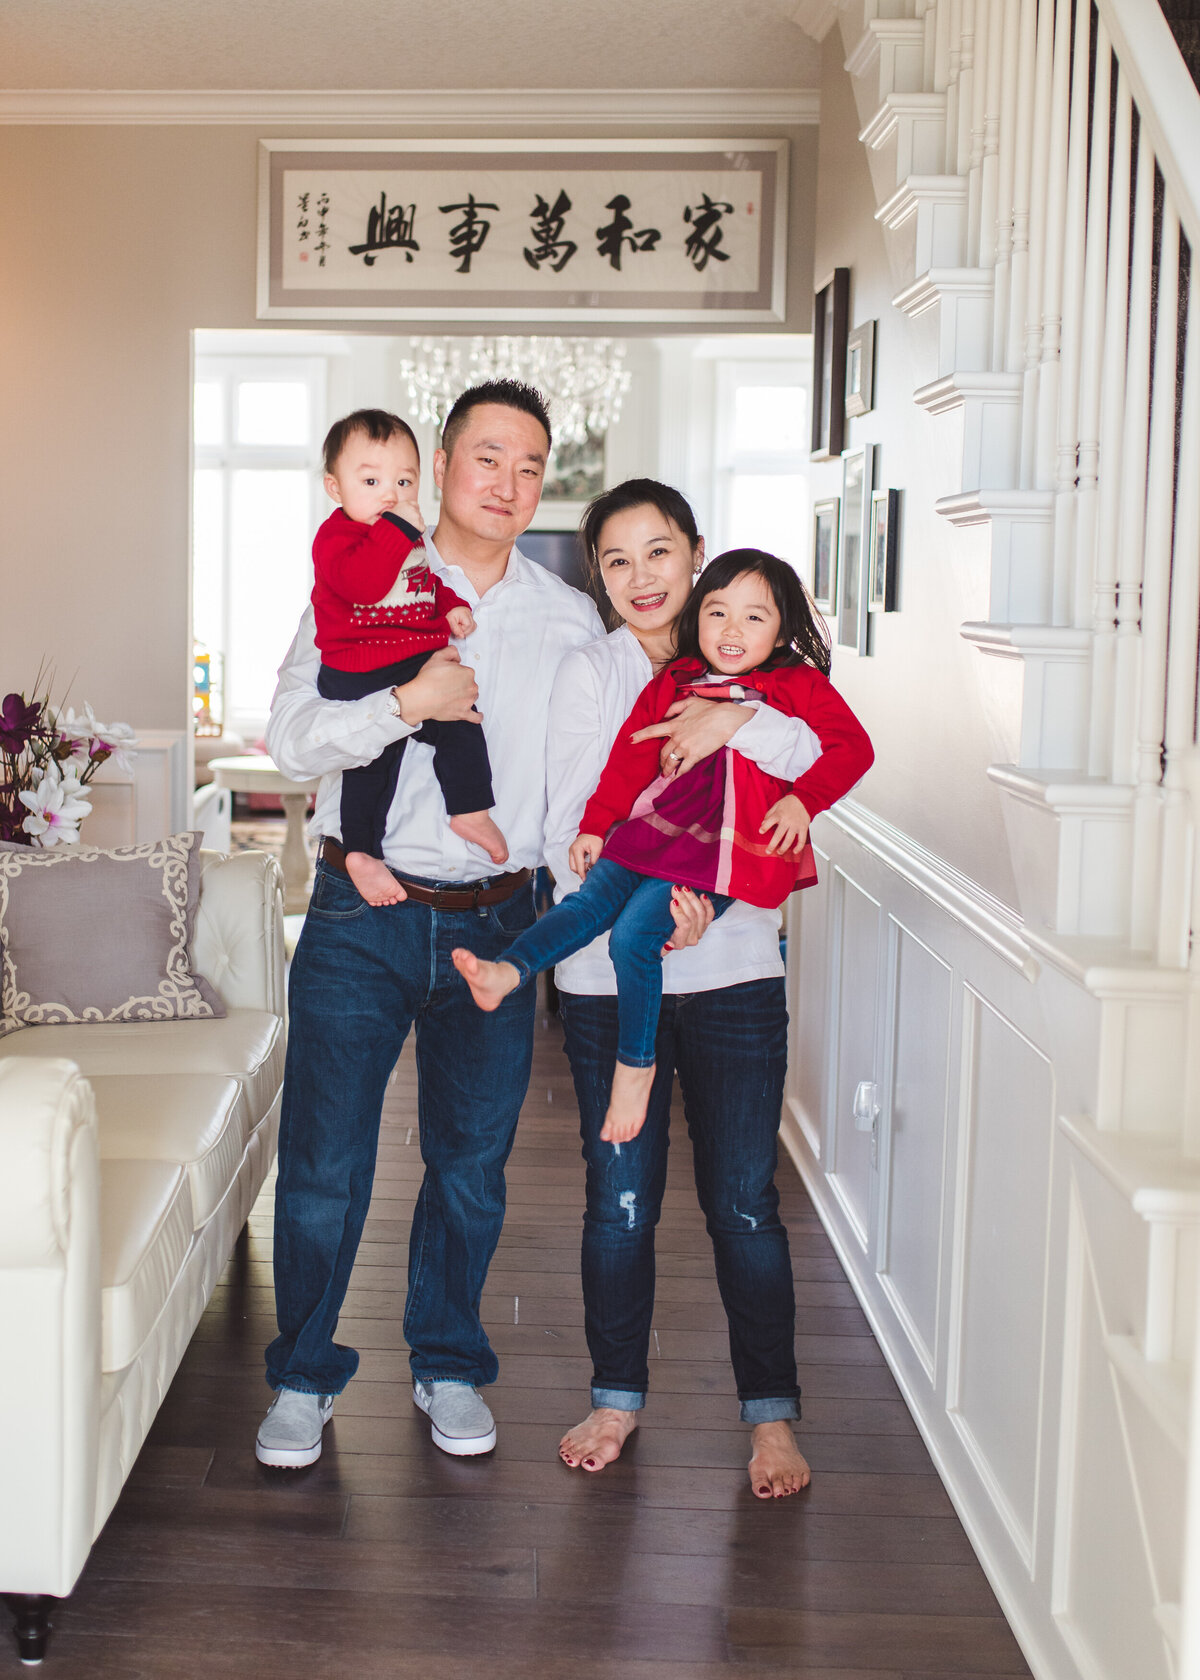 Des-Moines-Iowa-Family-Photographer-Theresa-Schumacher-Photography-Asian-Family-House